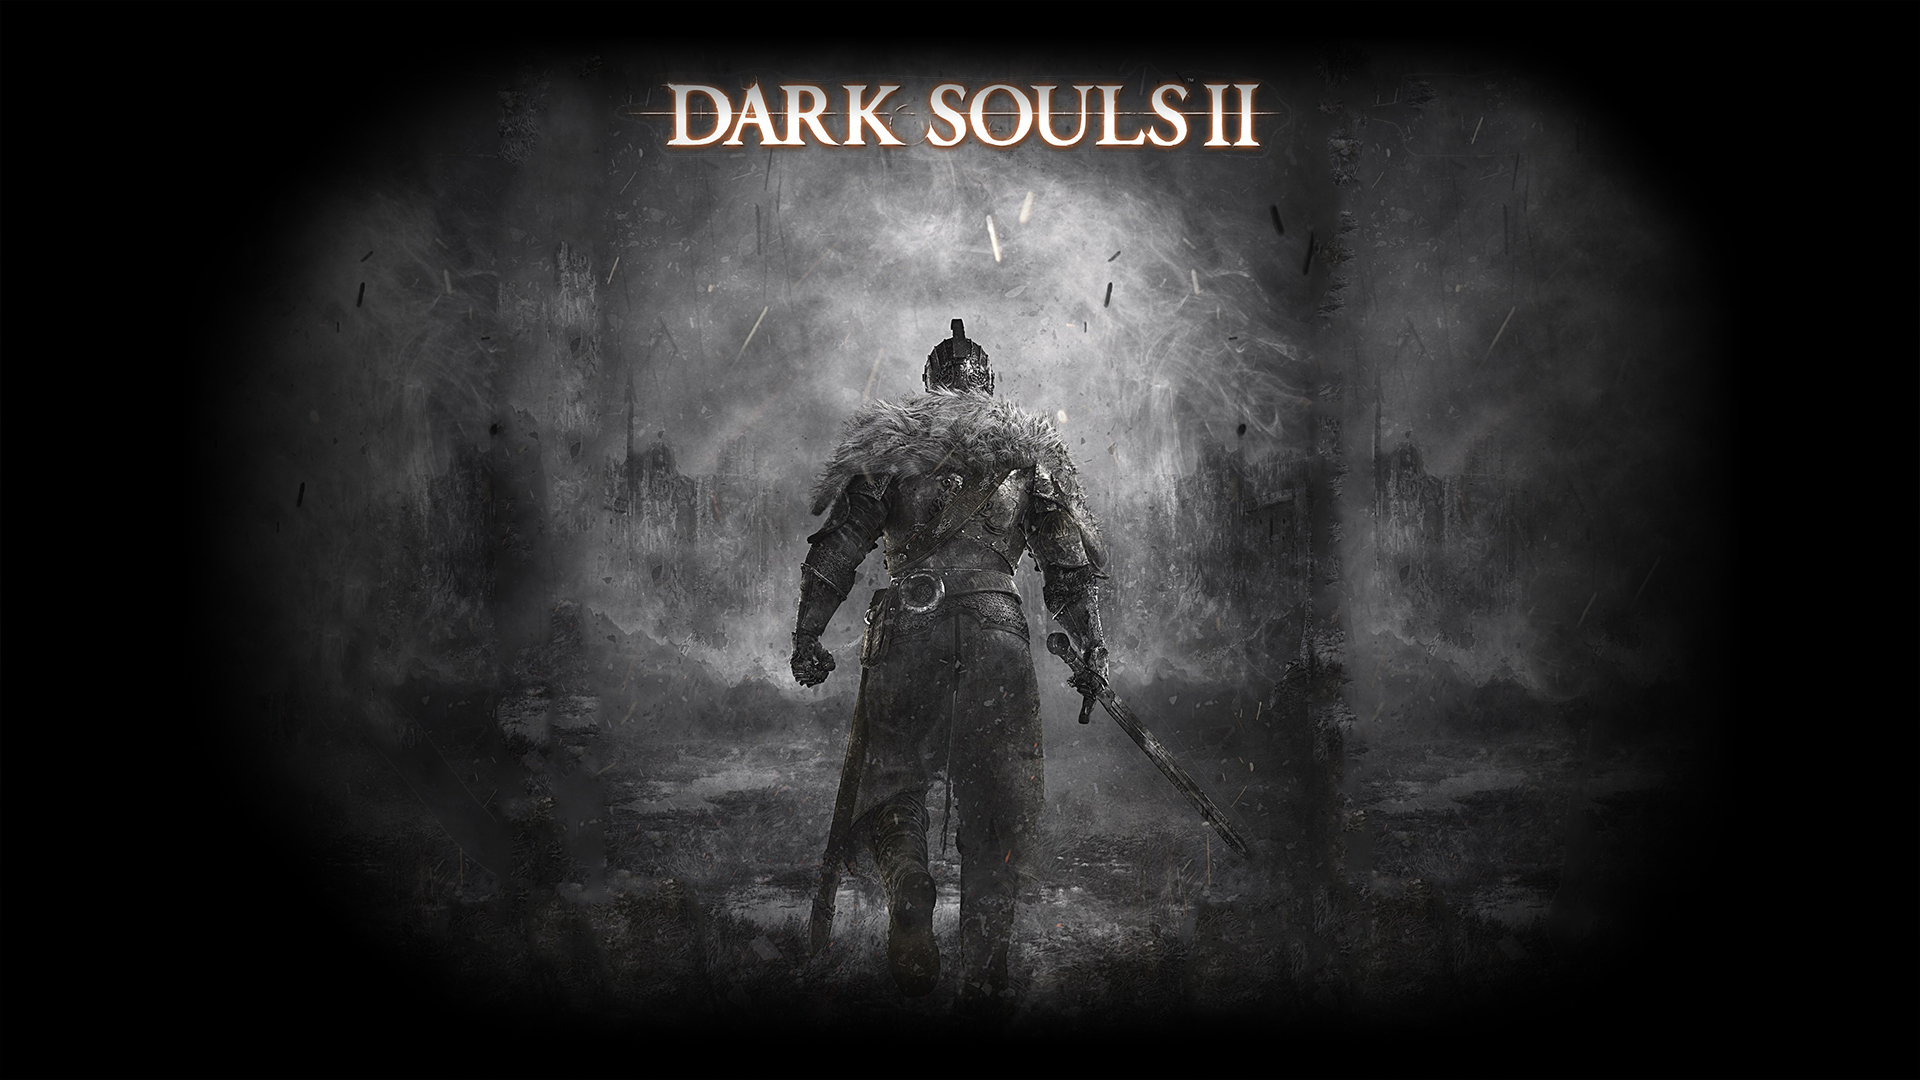 dark souls 2 / II game knight hd wallpaper , image , picture , photo ...